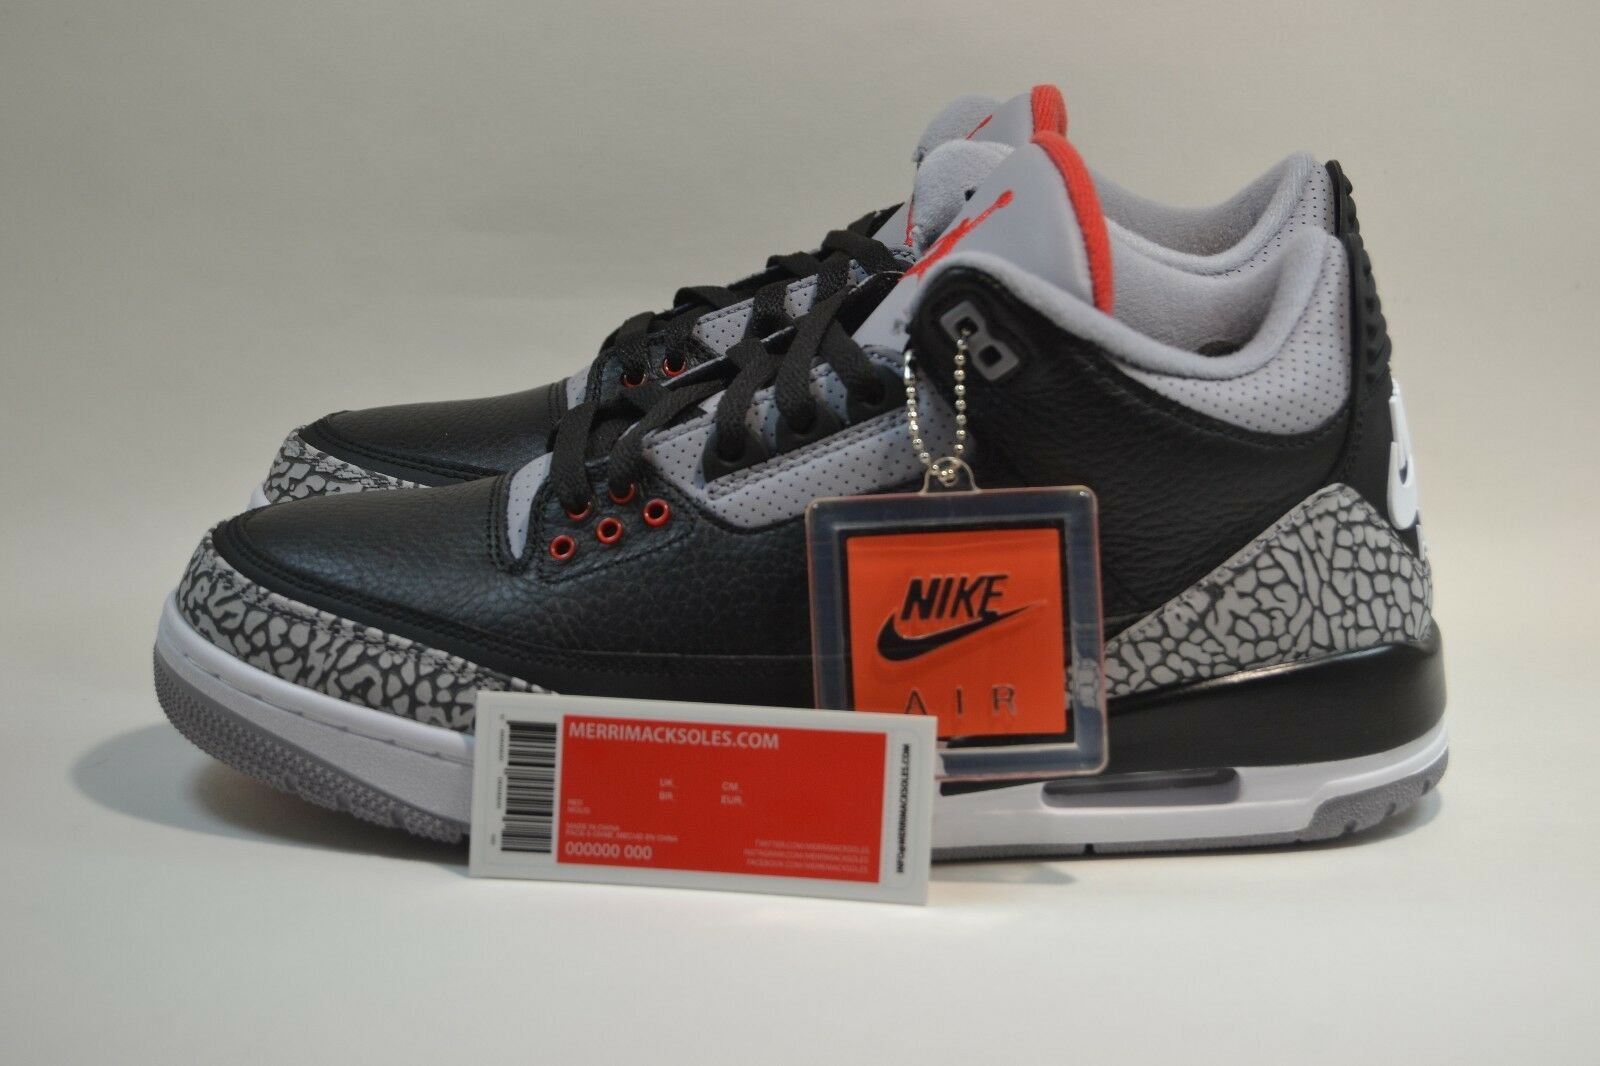 New Mens Nike Air Jordan 3 Retro OG Black Cement 854262-001 2018